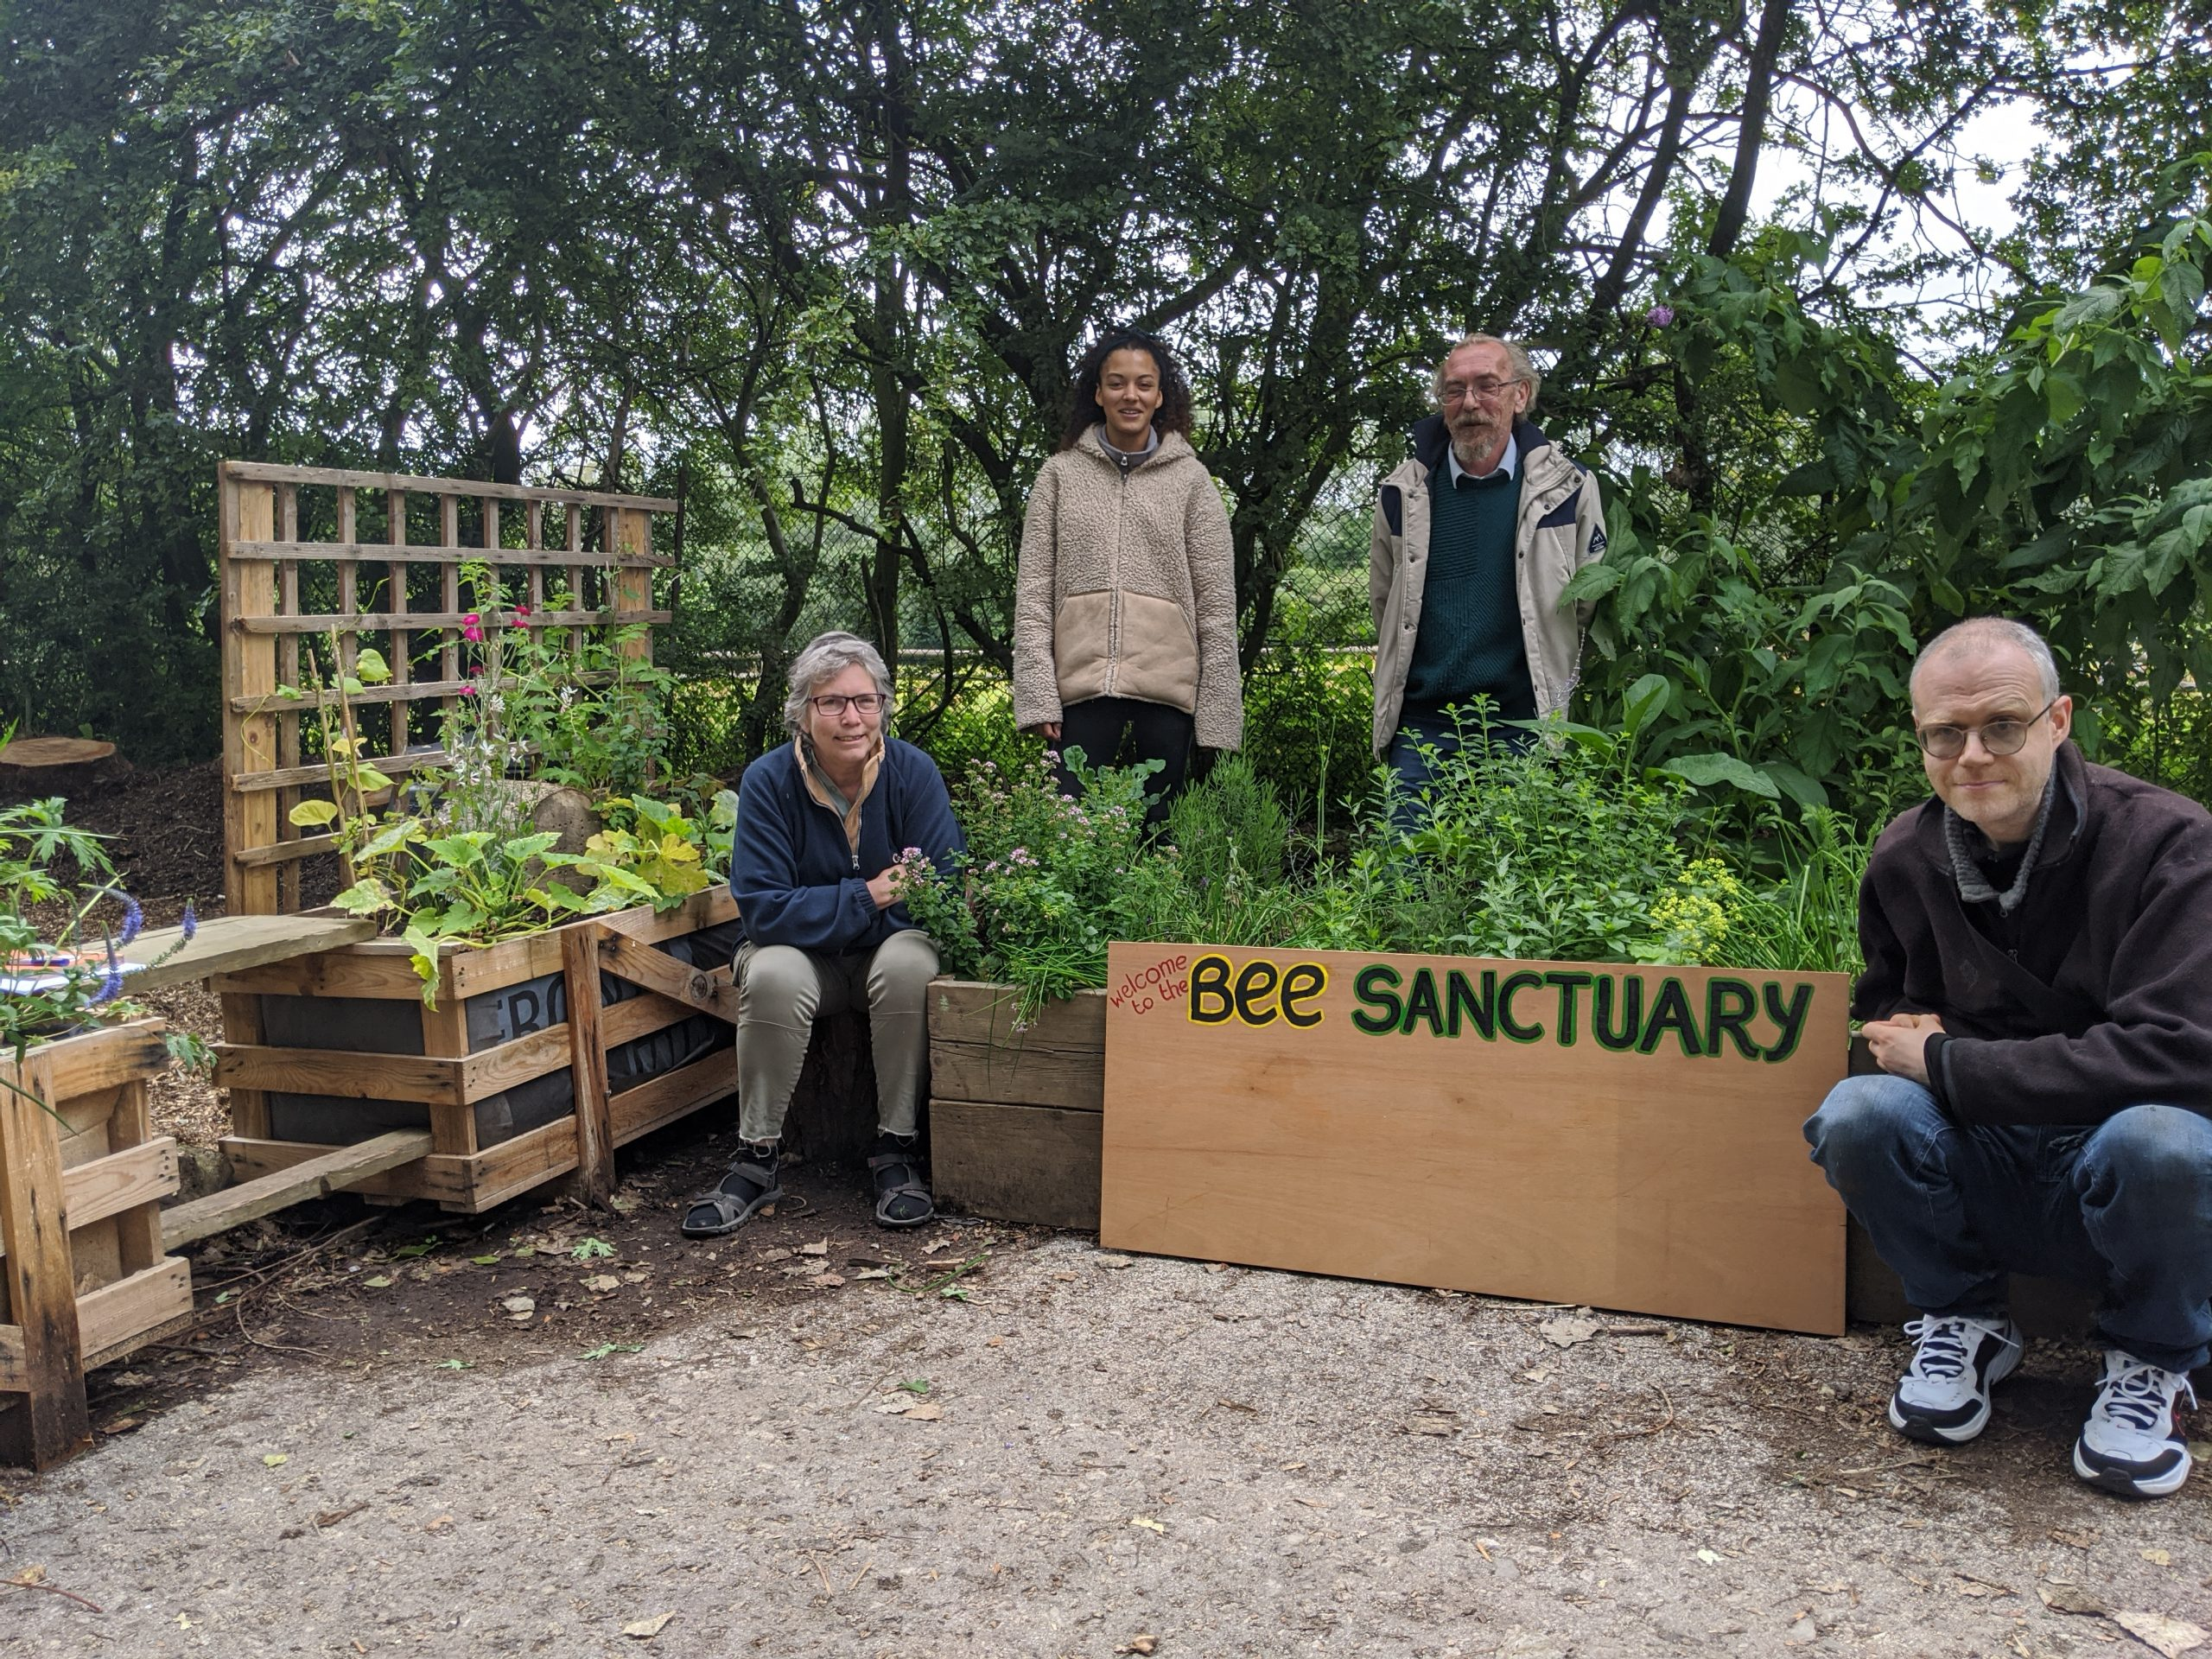 Volunteers with welcome sign and planters